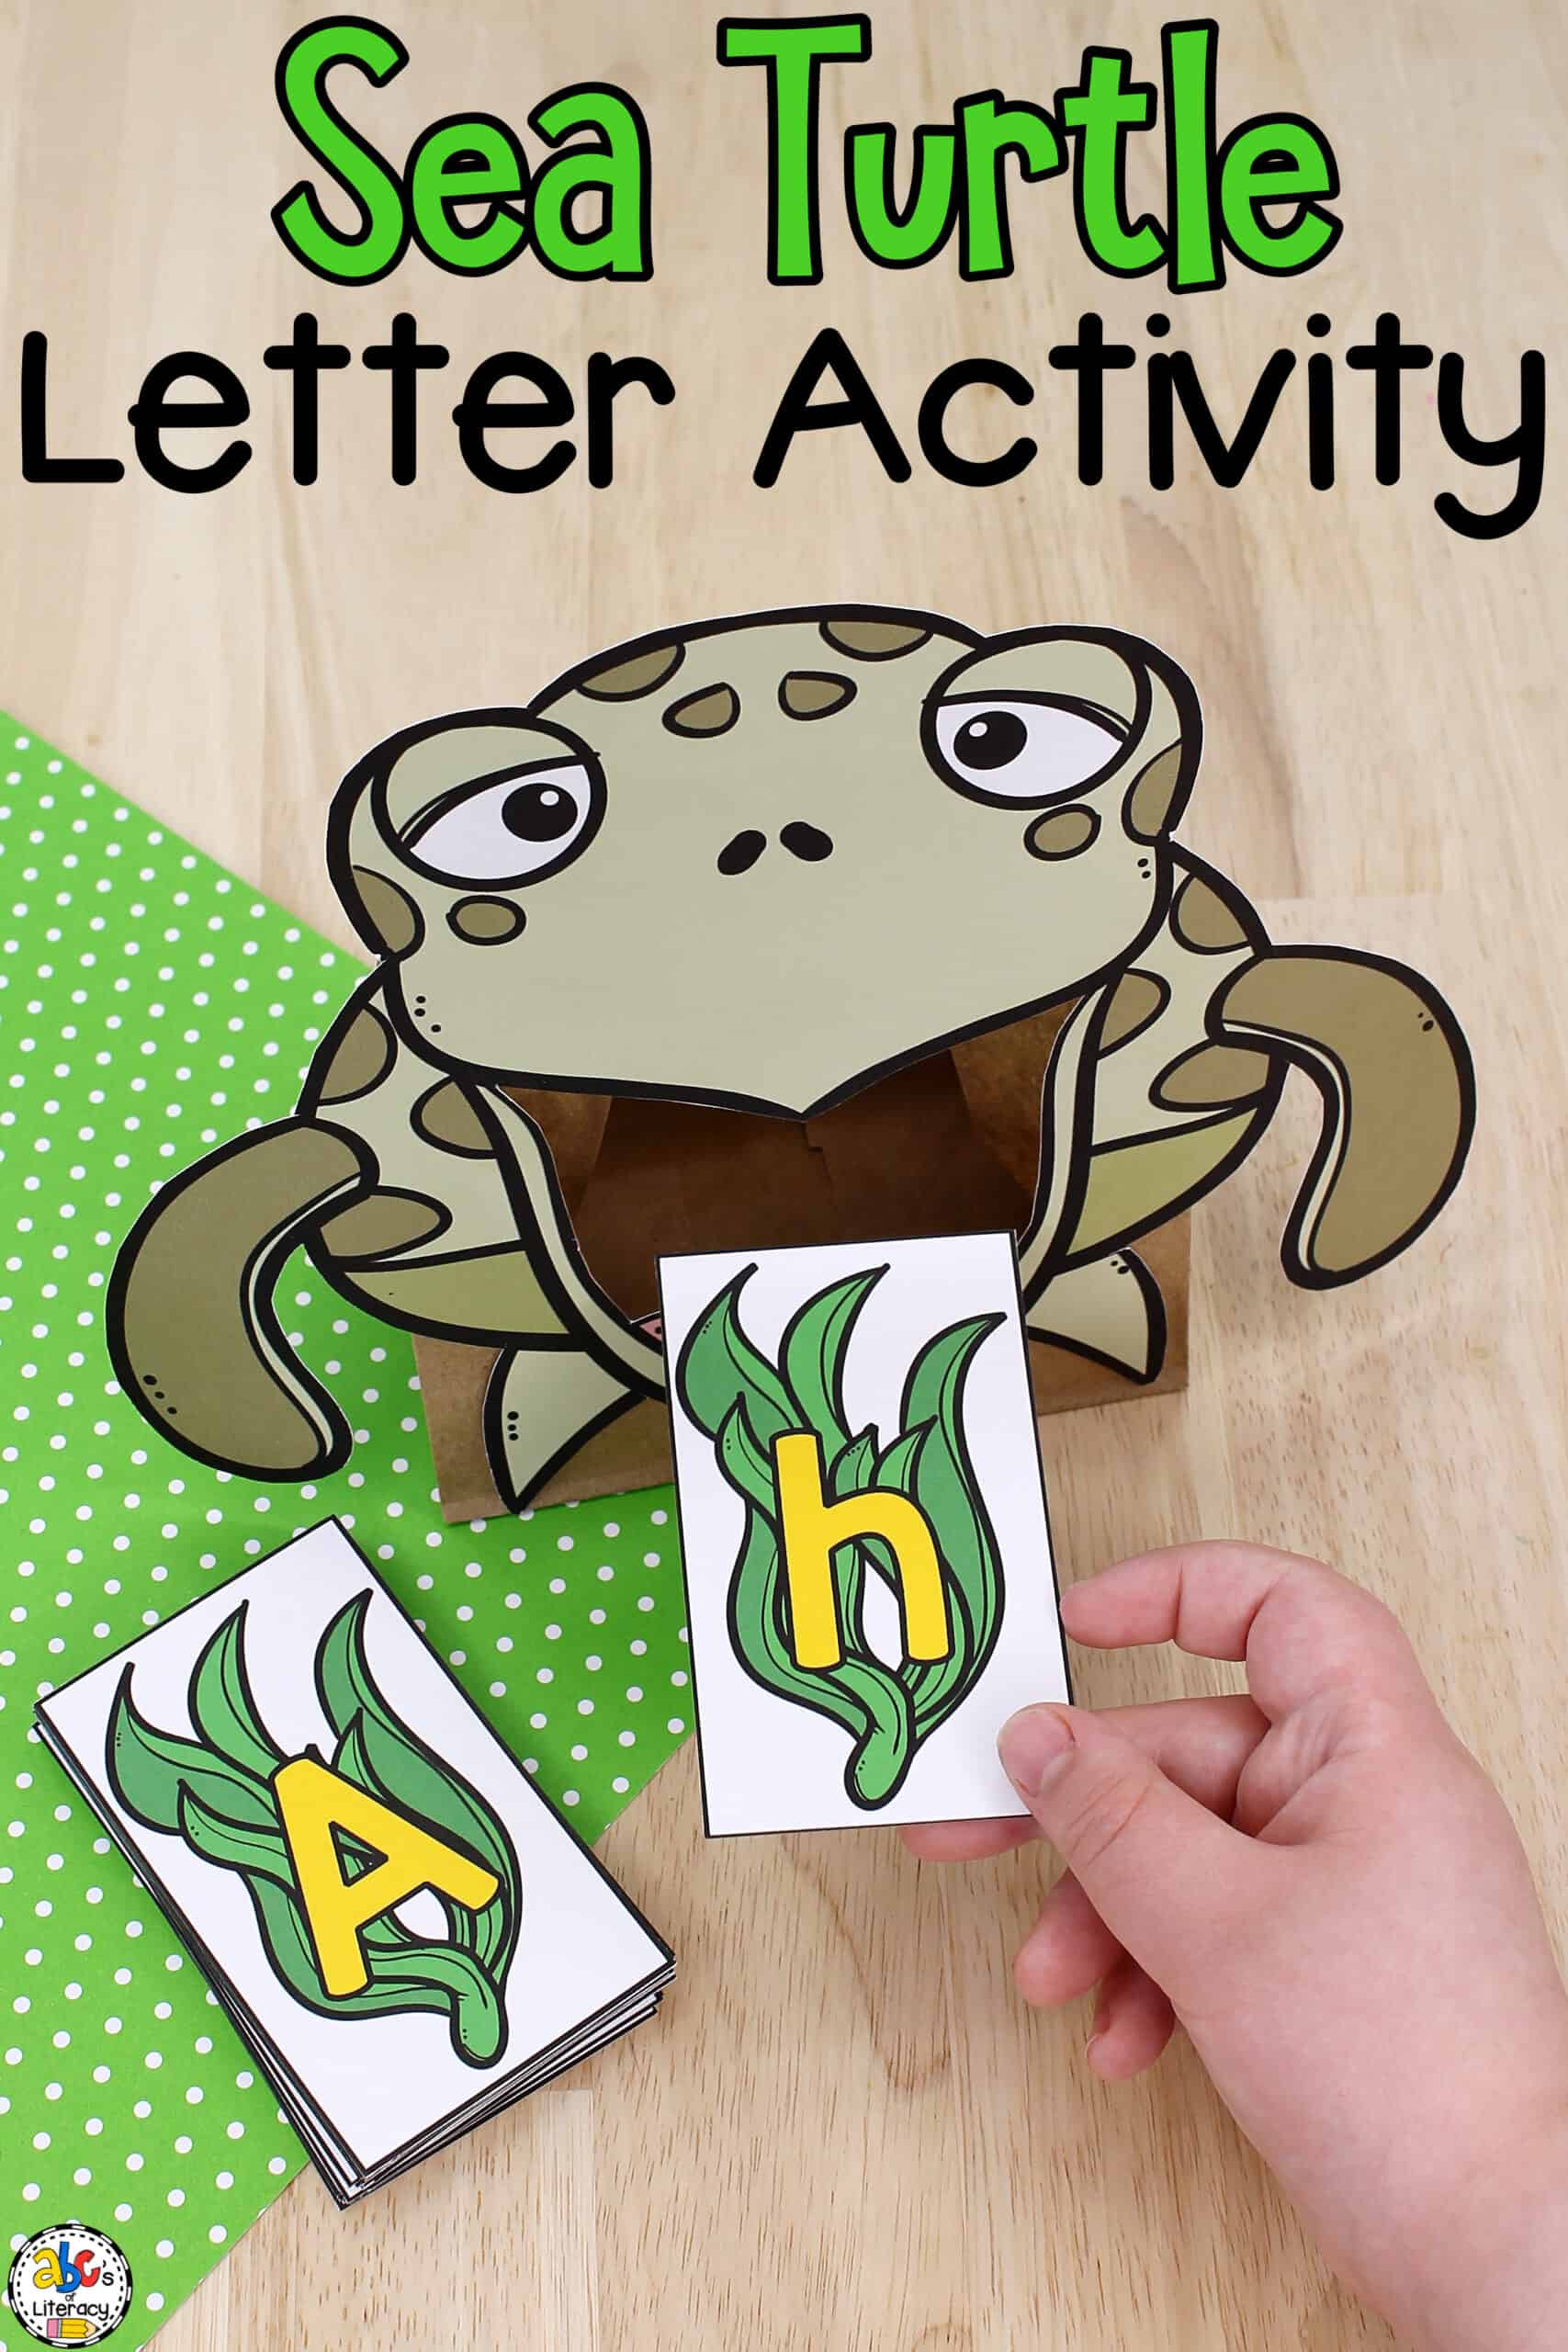 Sea Turtle Letter Activity